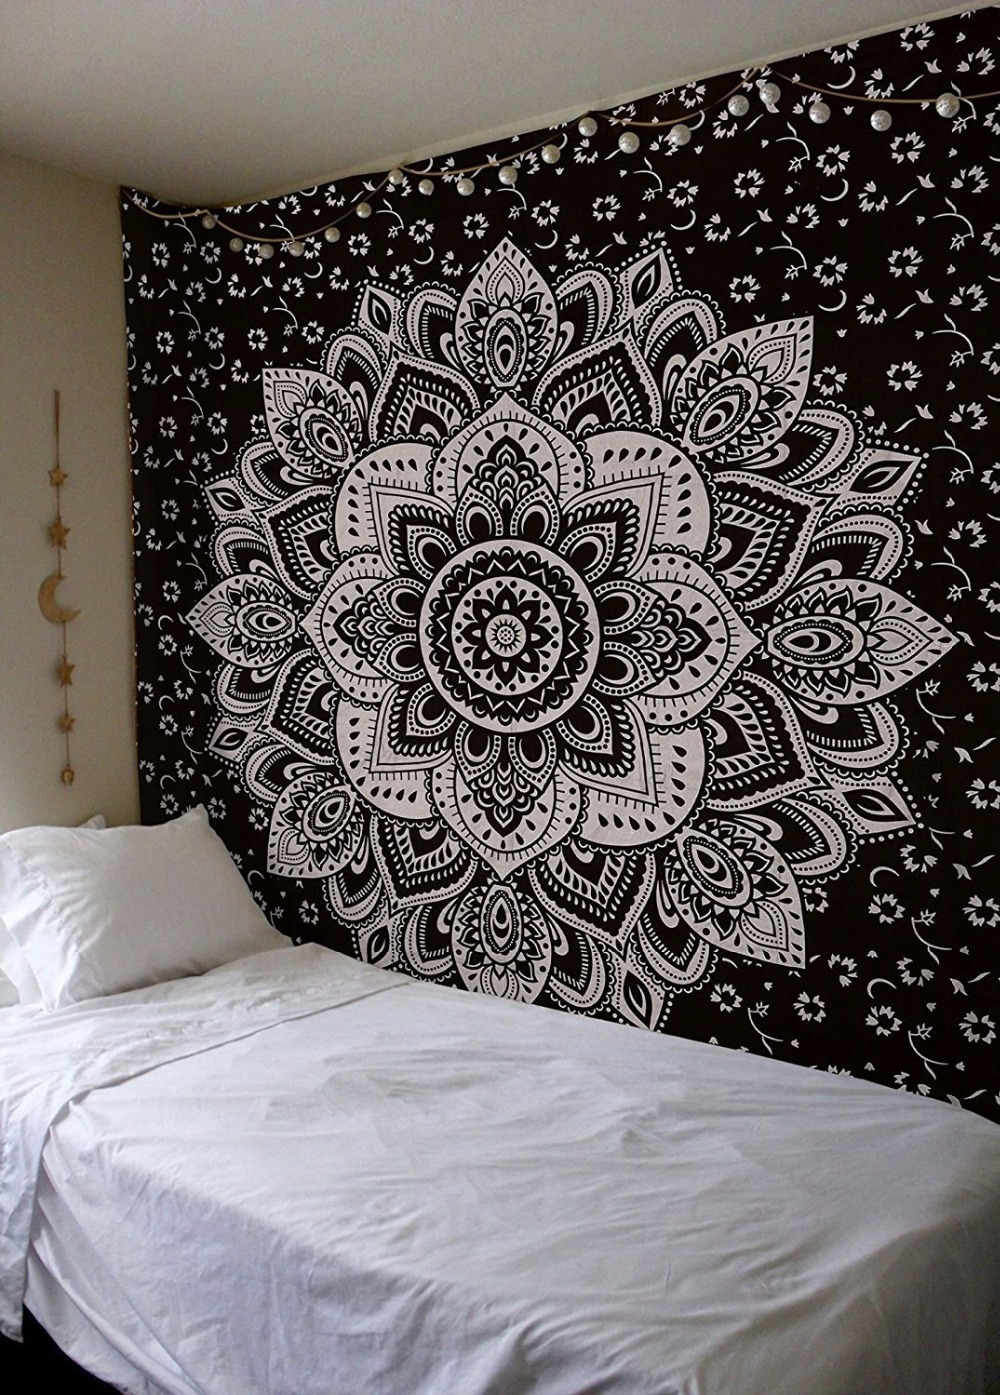 Home Decor wall Tapestry Mandala Floral Art Hanging Tapestry Black And  White Blue Indian Boho Wall Hippie Tapis Carpet Sheet-in Tapestry from Home    Garden ... a2efed2b1